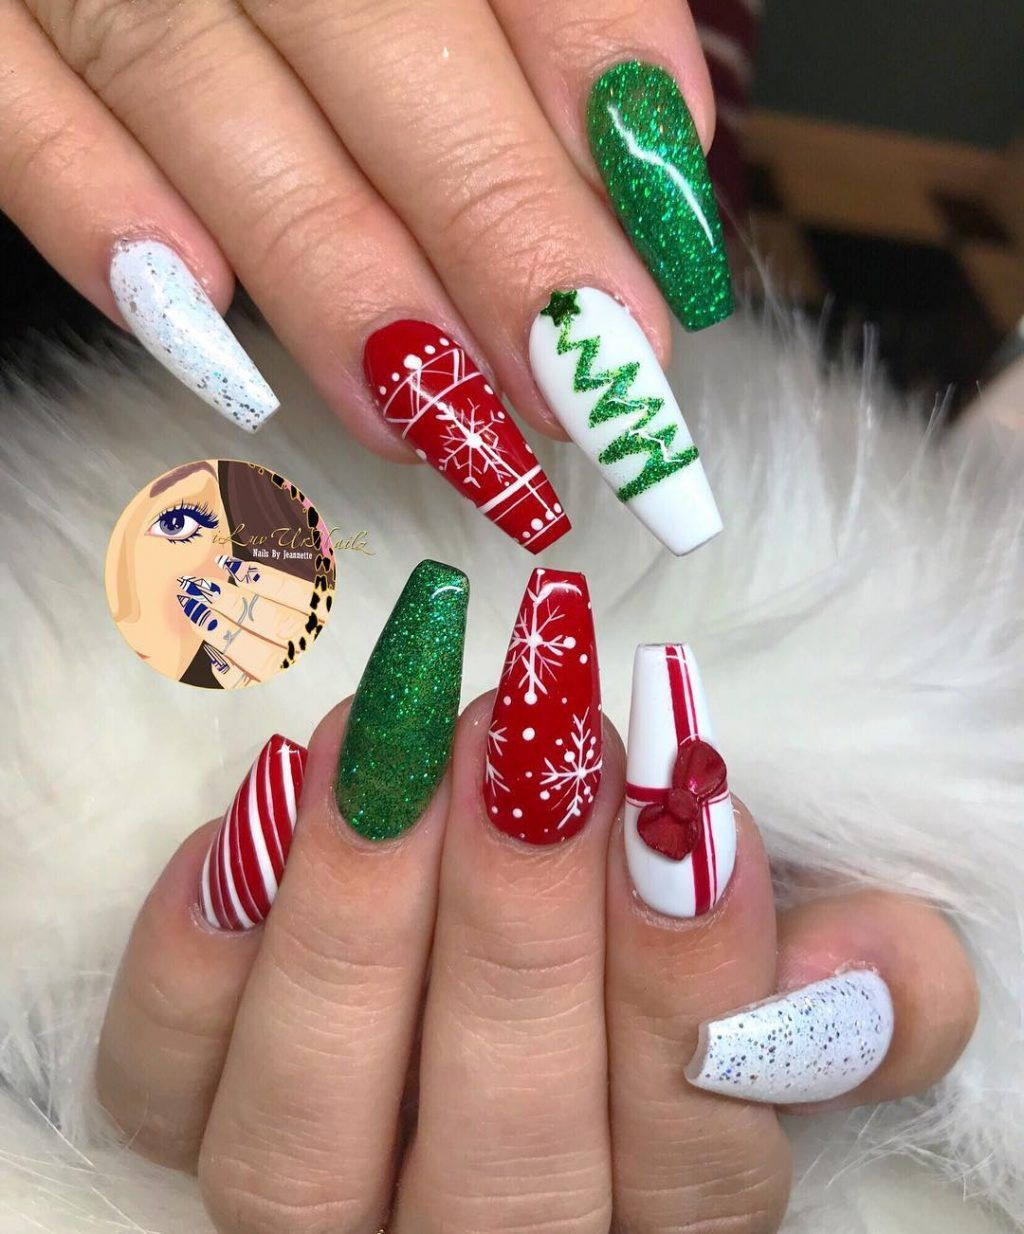 47 Best Christmas & Holiday Nail Designs 2020: Festive